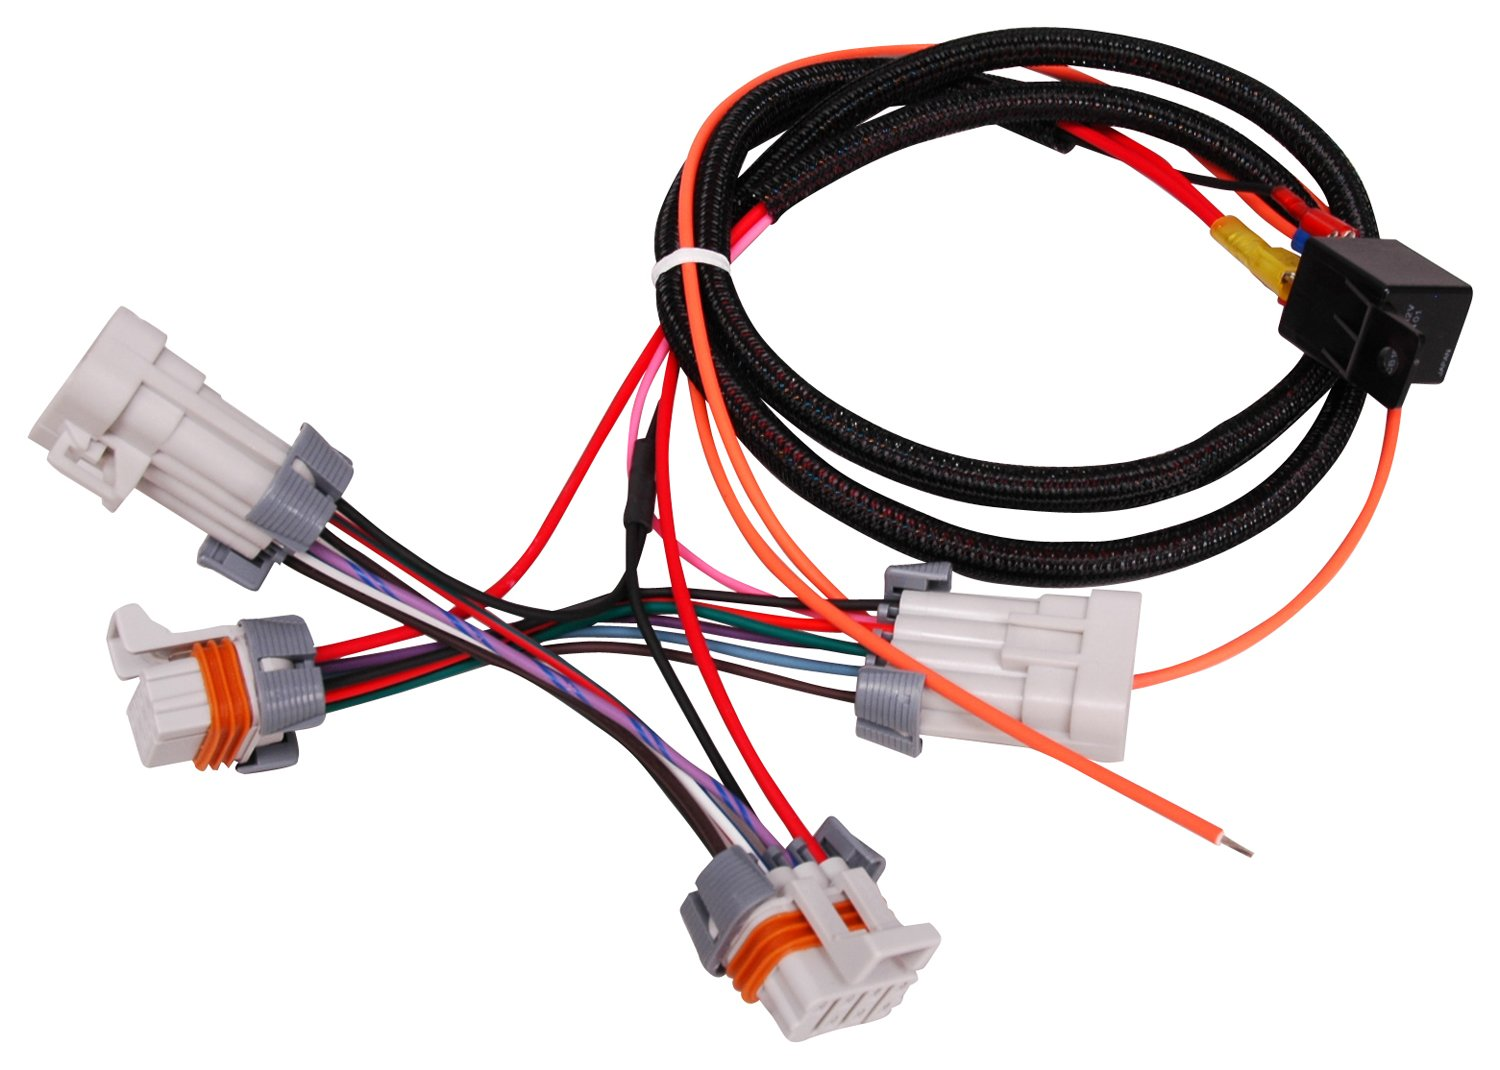 88867_v1 harnesses msd performance products tech support 888 258 3835 Standalone Wiring Harness 5 3 at virtualis.co